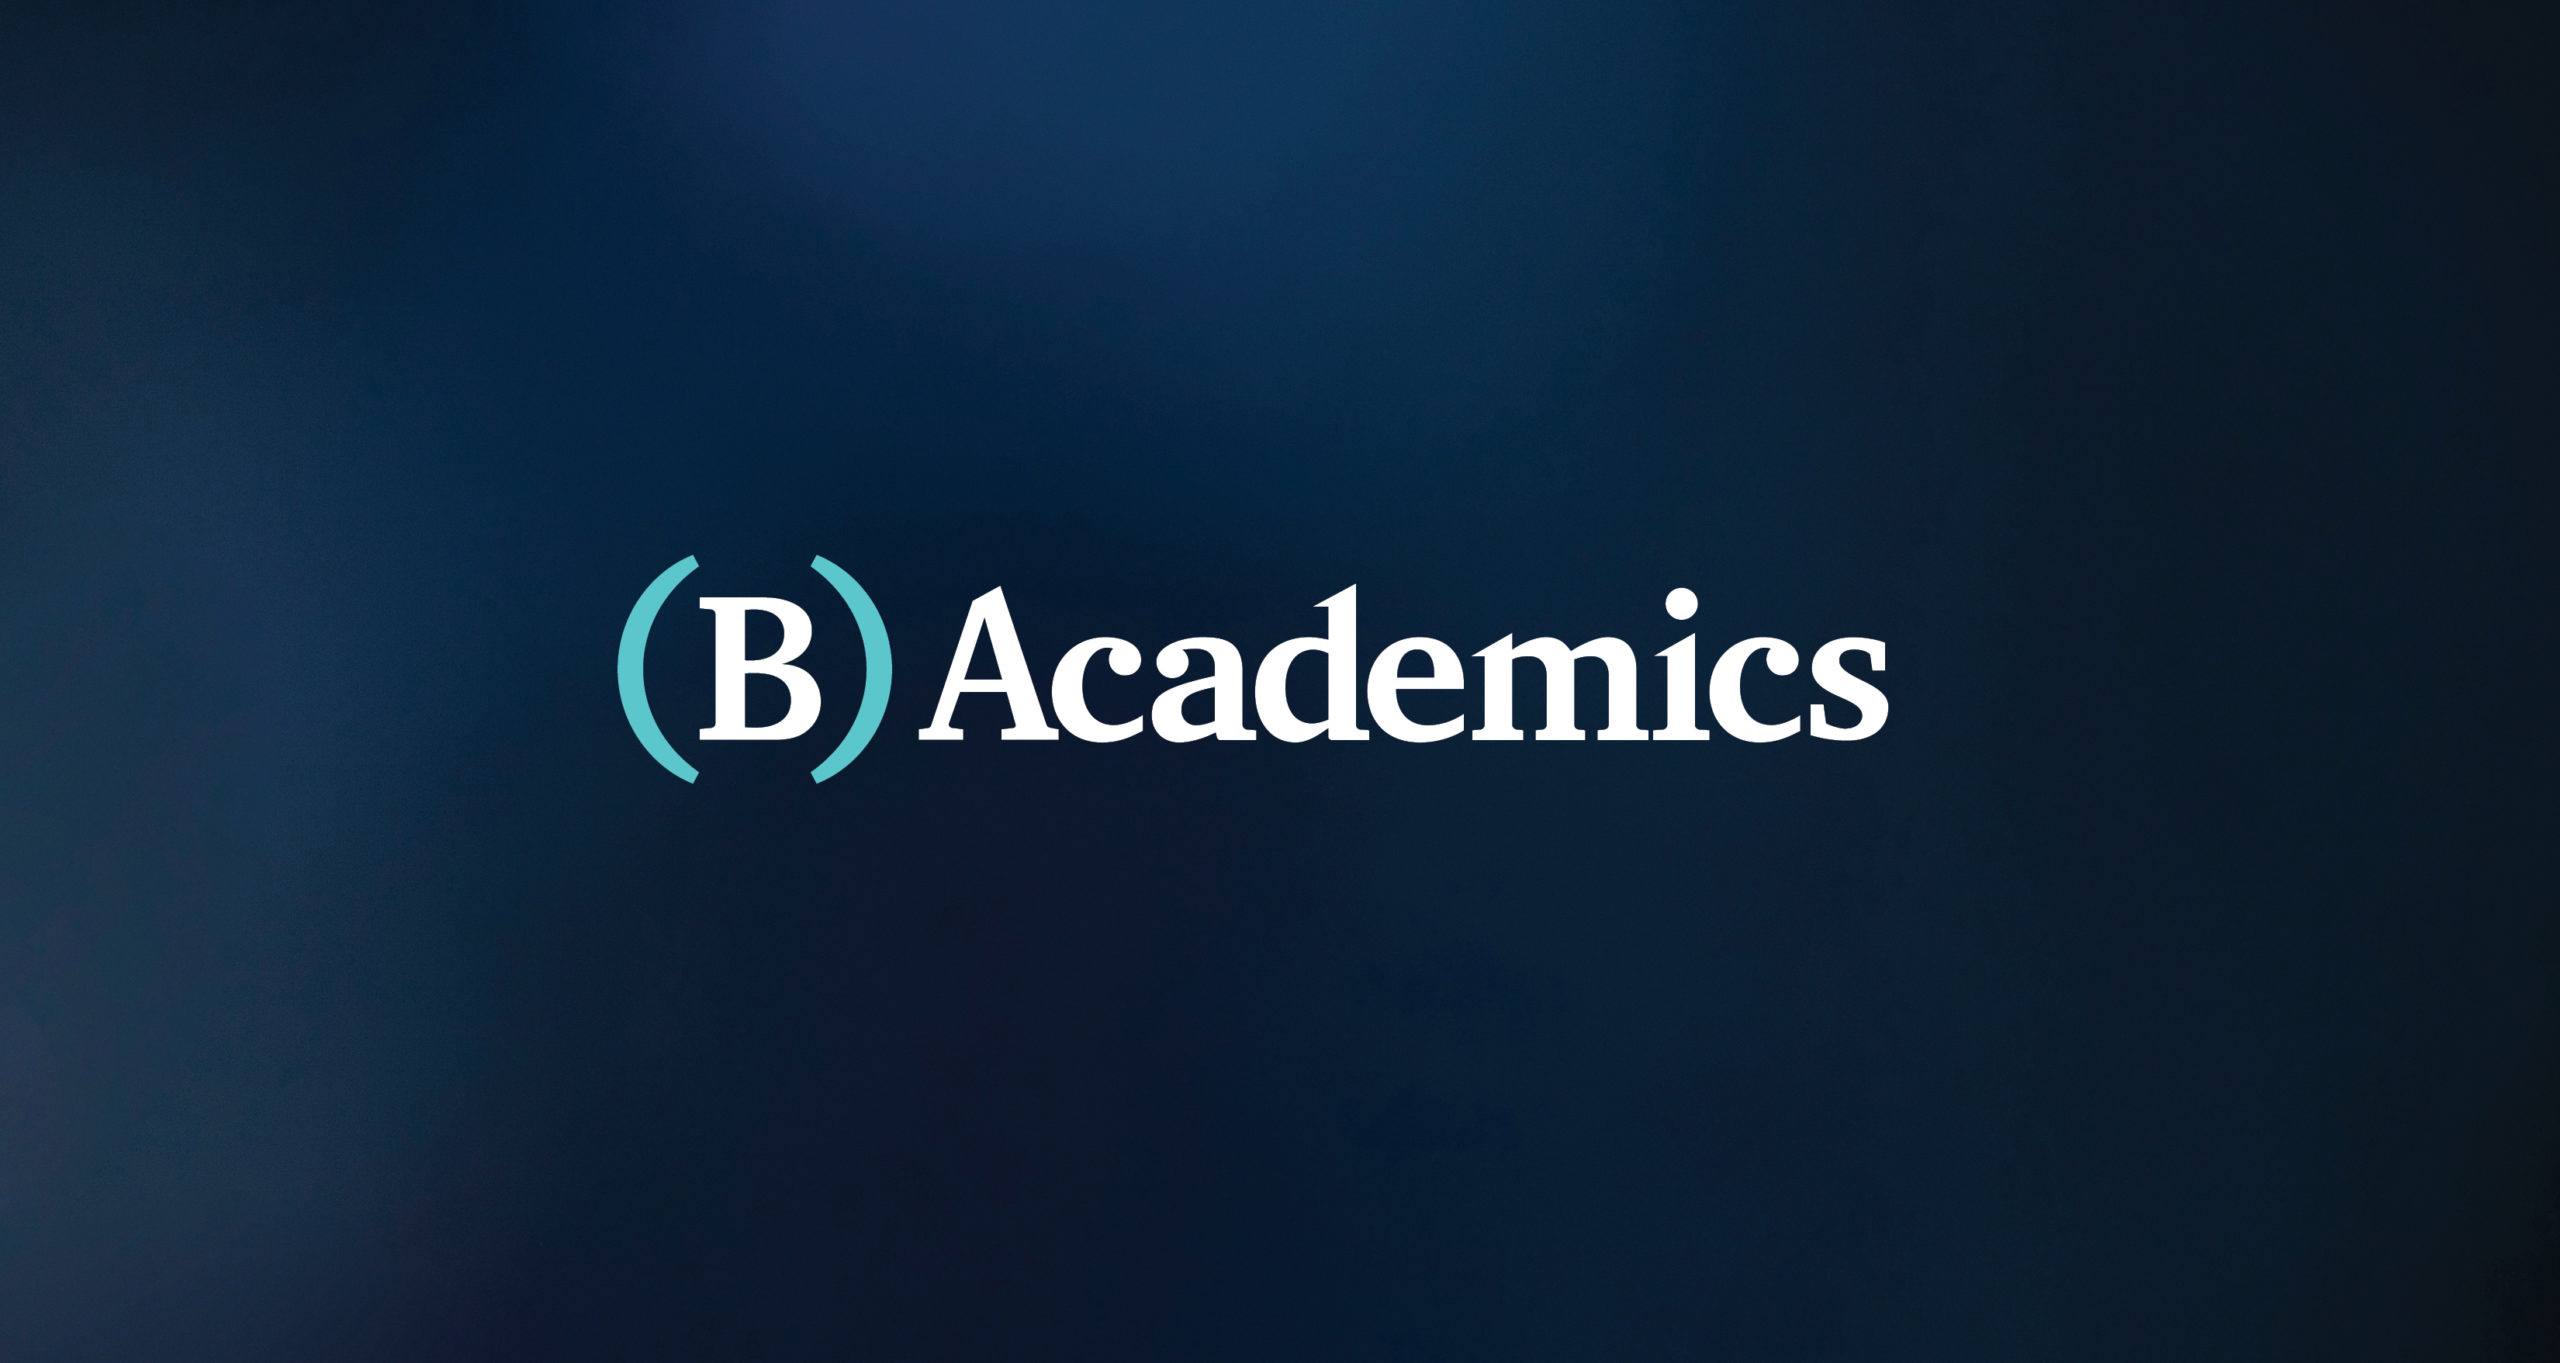 Logo for B Academics